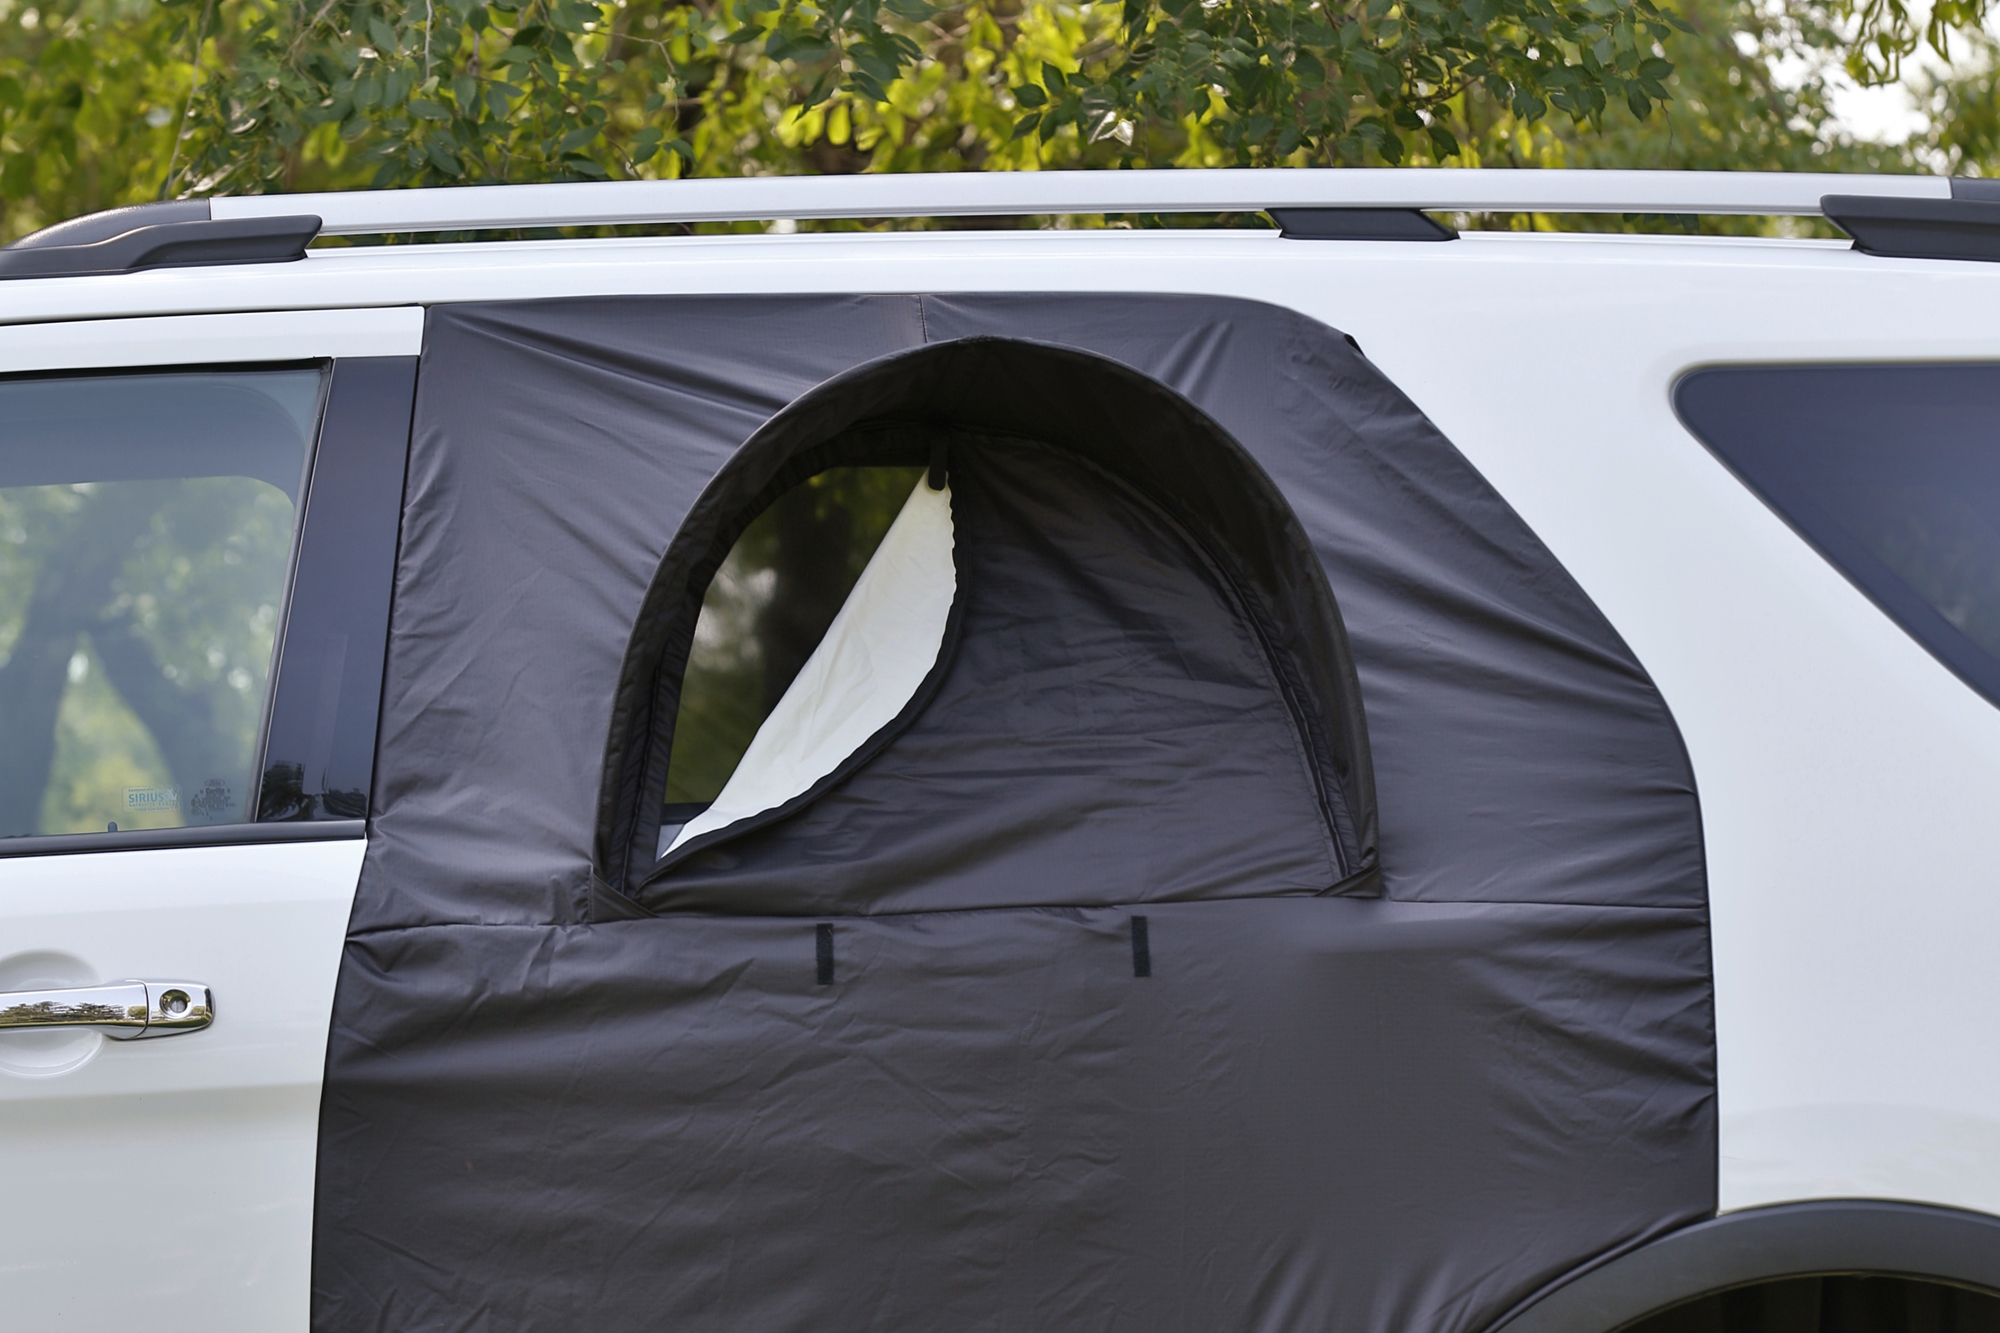 roadie products outdoor gear the overnighter suv door cover. Black Bedroom Furniture Sets. Home Design Ideas